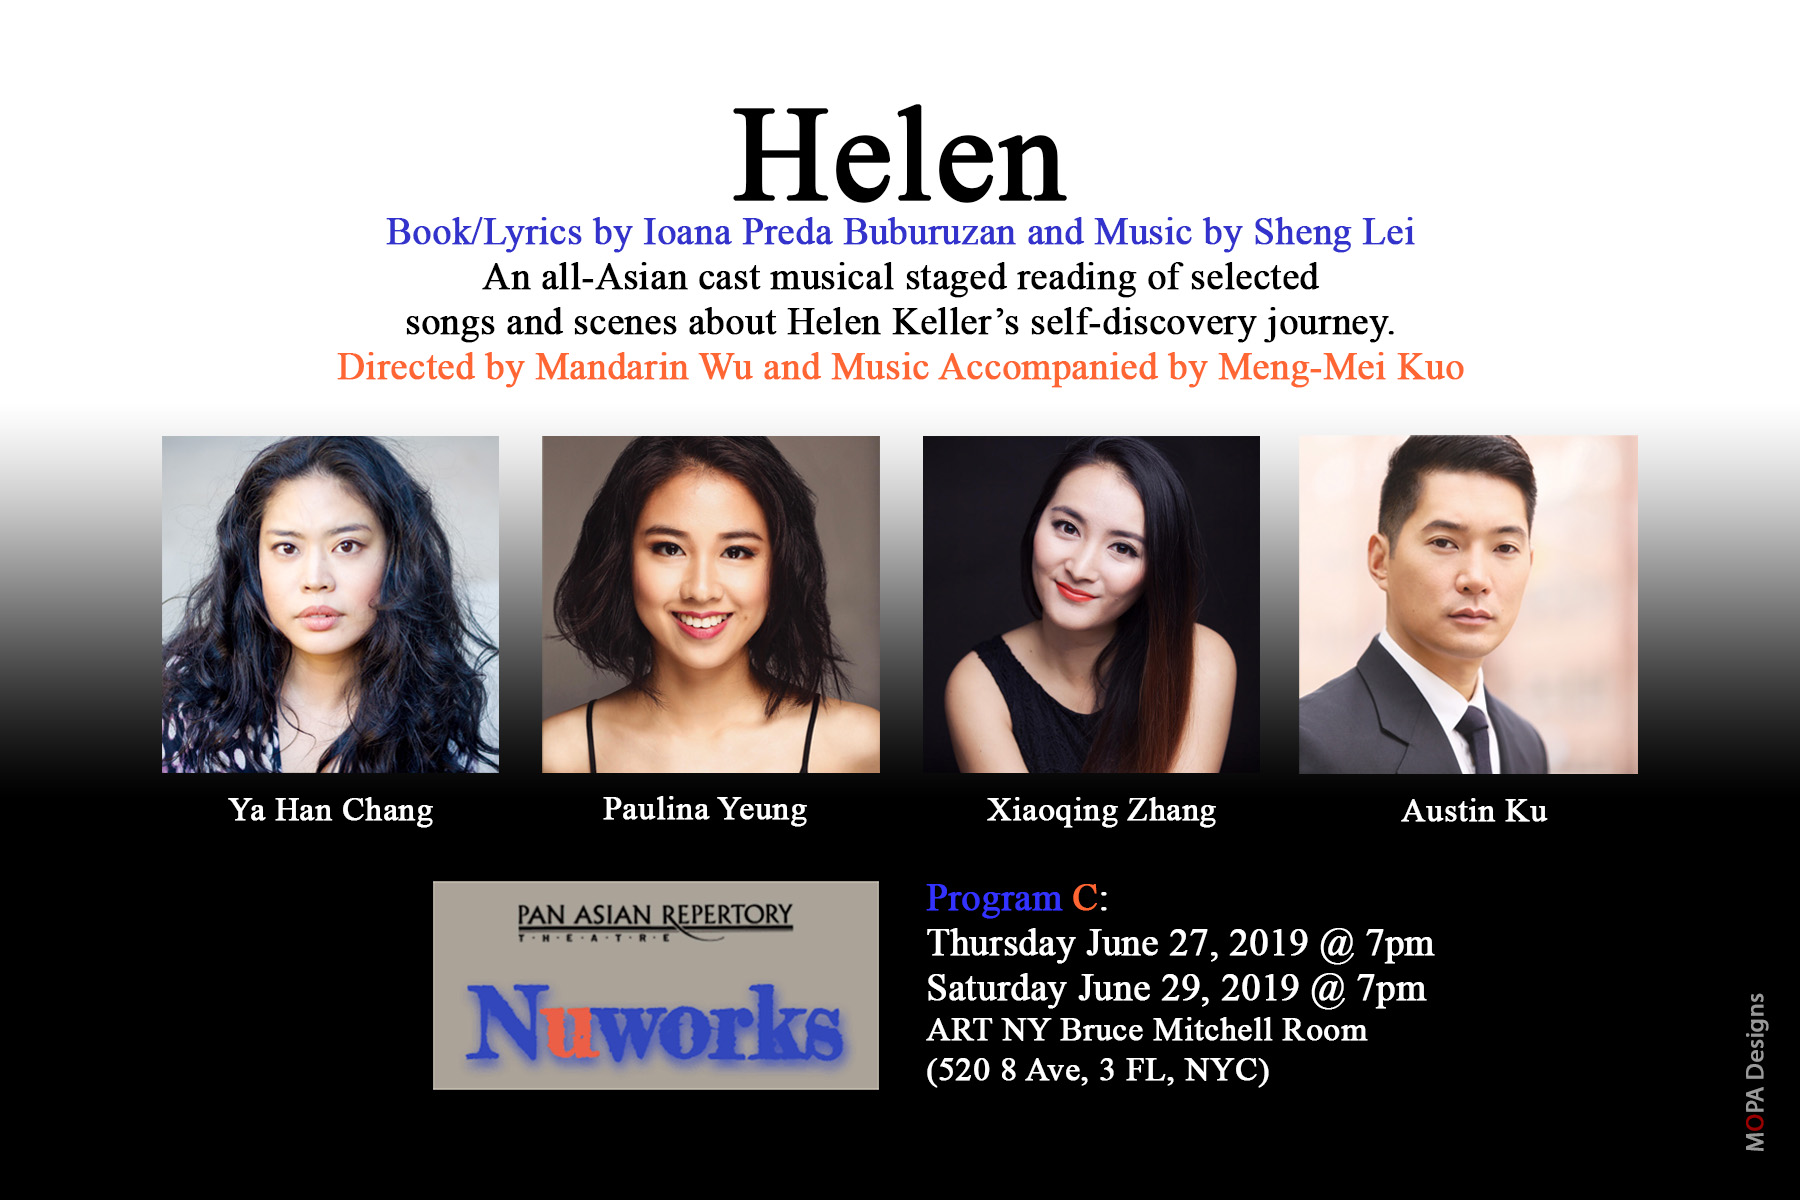 Helen: A Staged Reading - Pan Asian Repertory NuWorks Festival